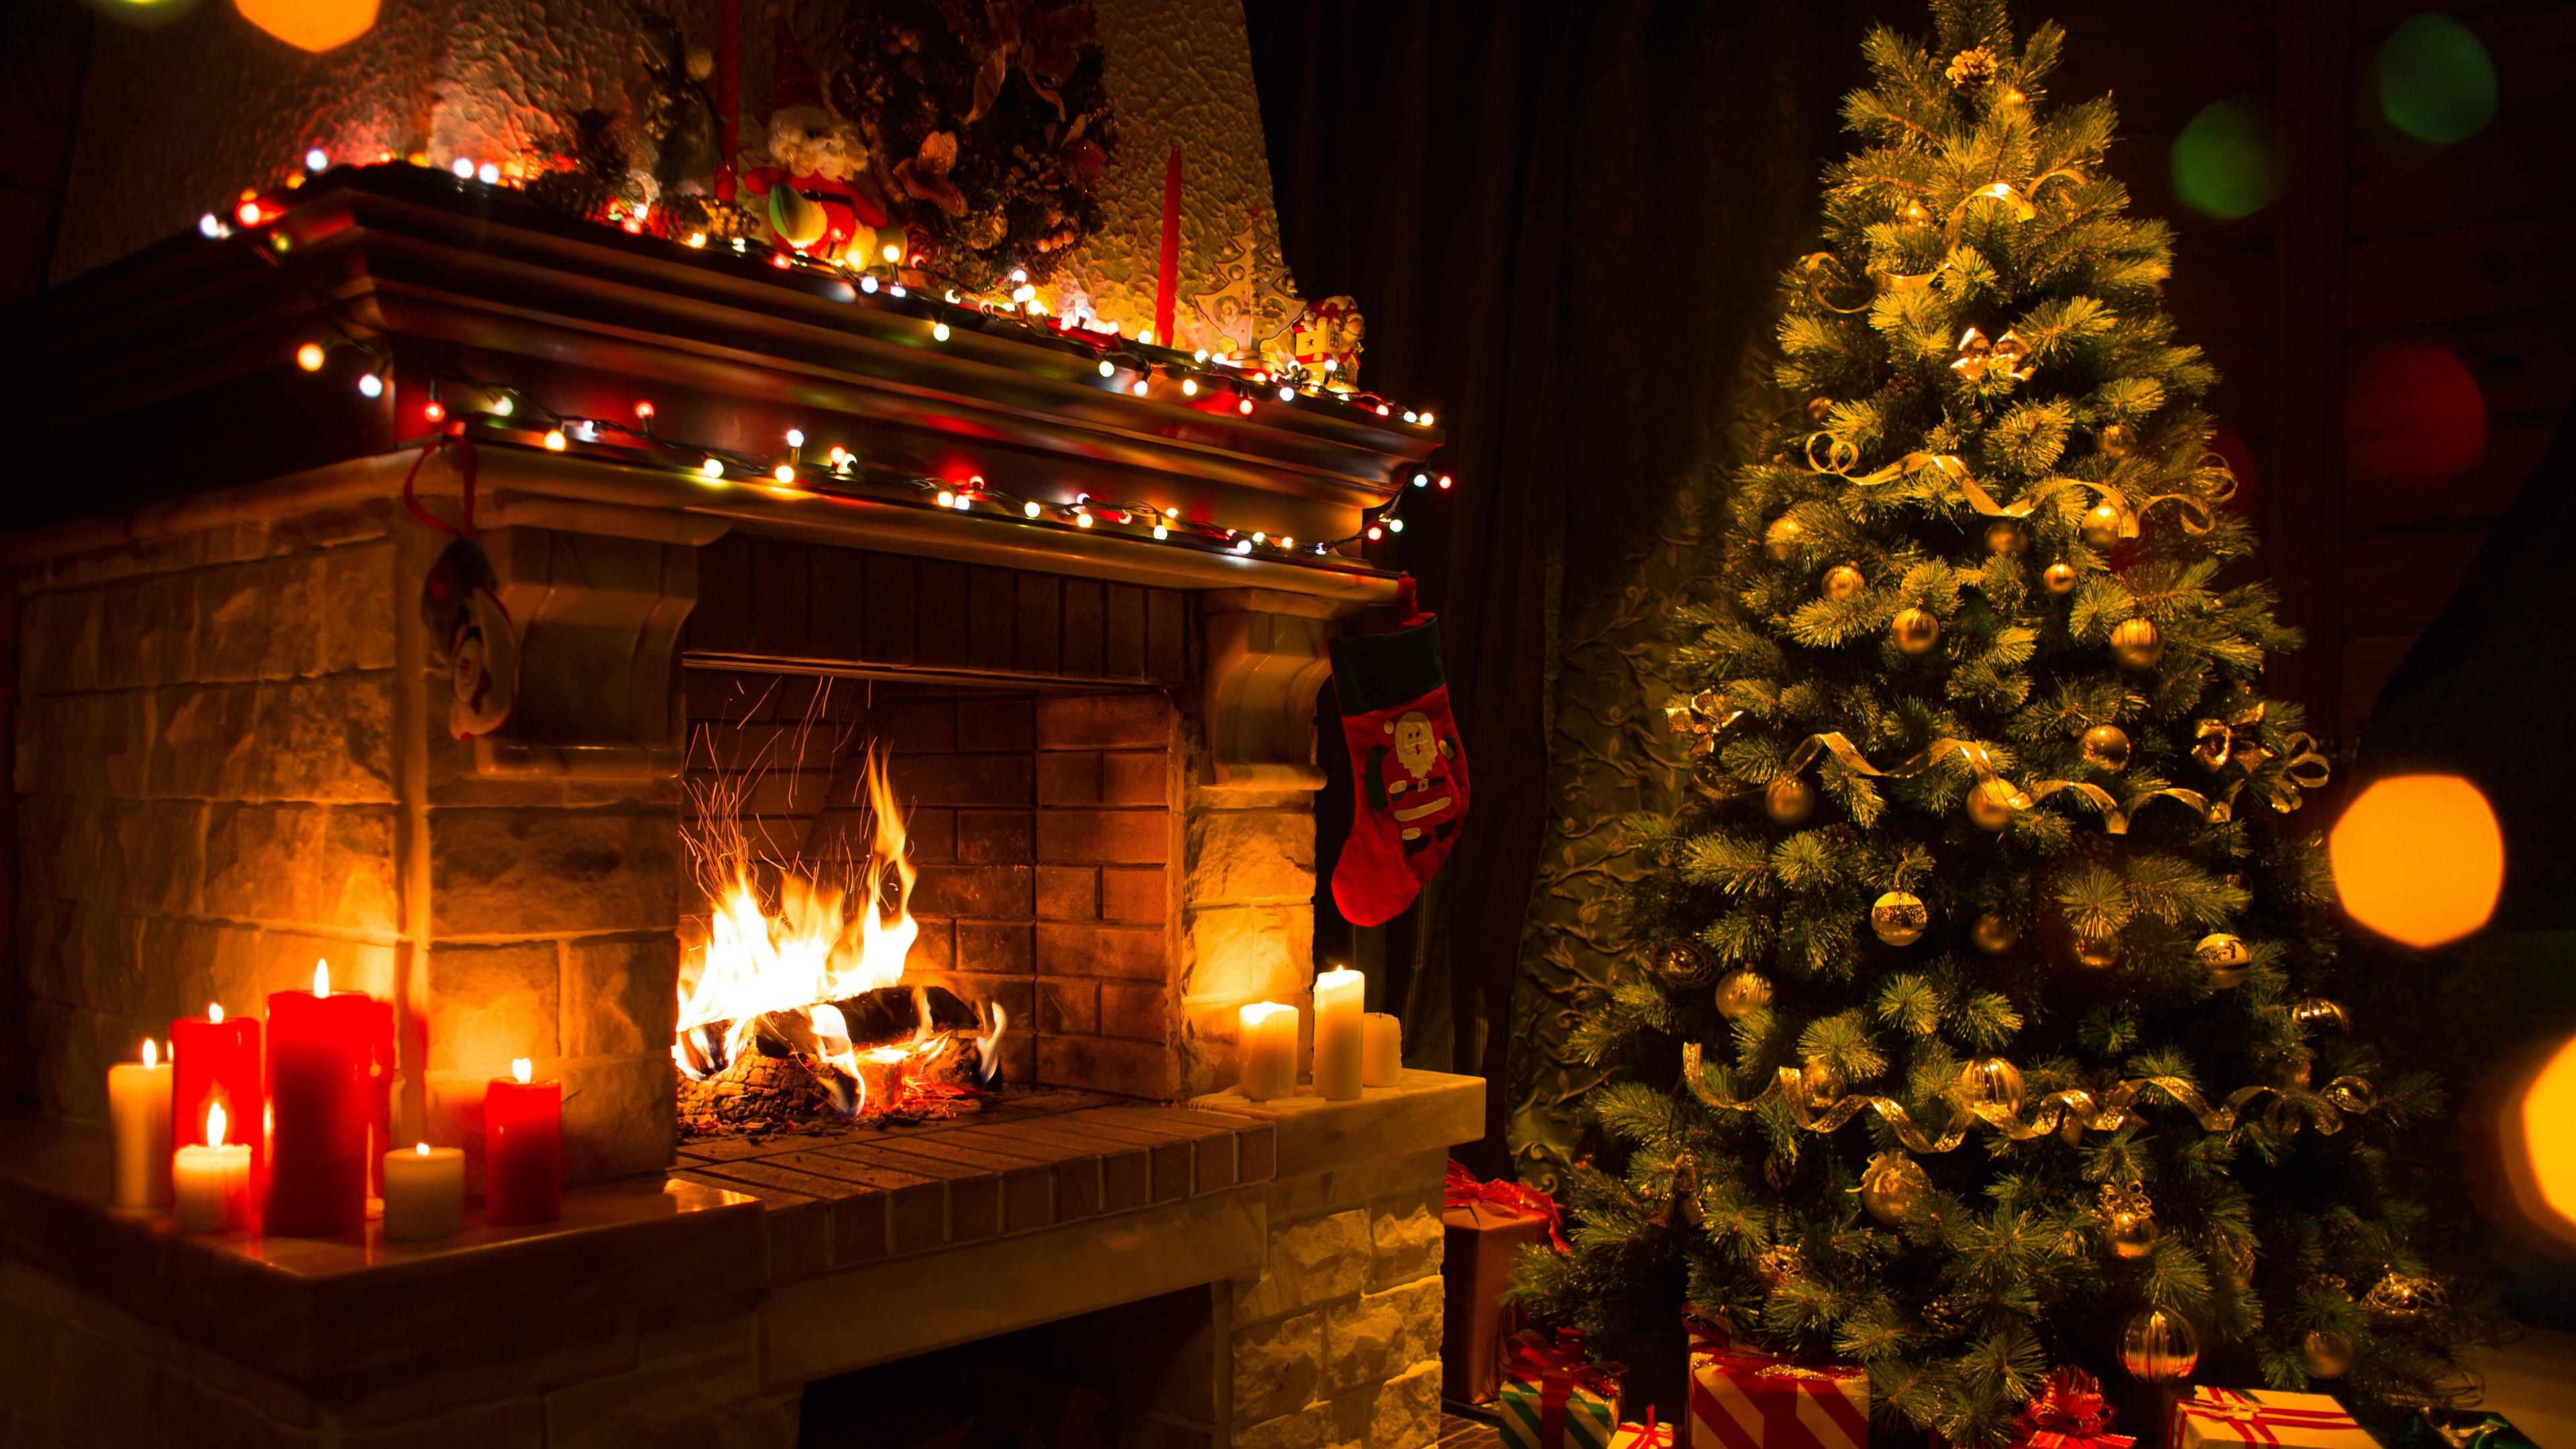 Christmas Fireplace Wallpapers   Top Christmas Fireplace 3840x2160